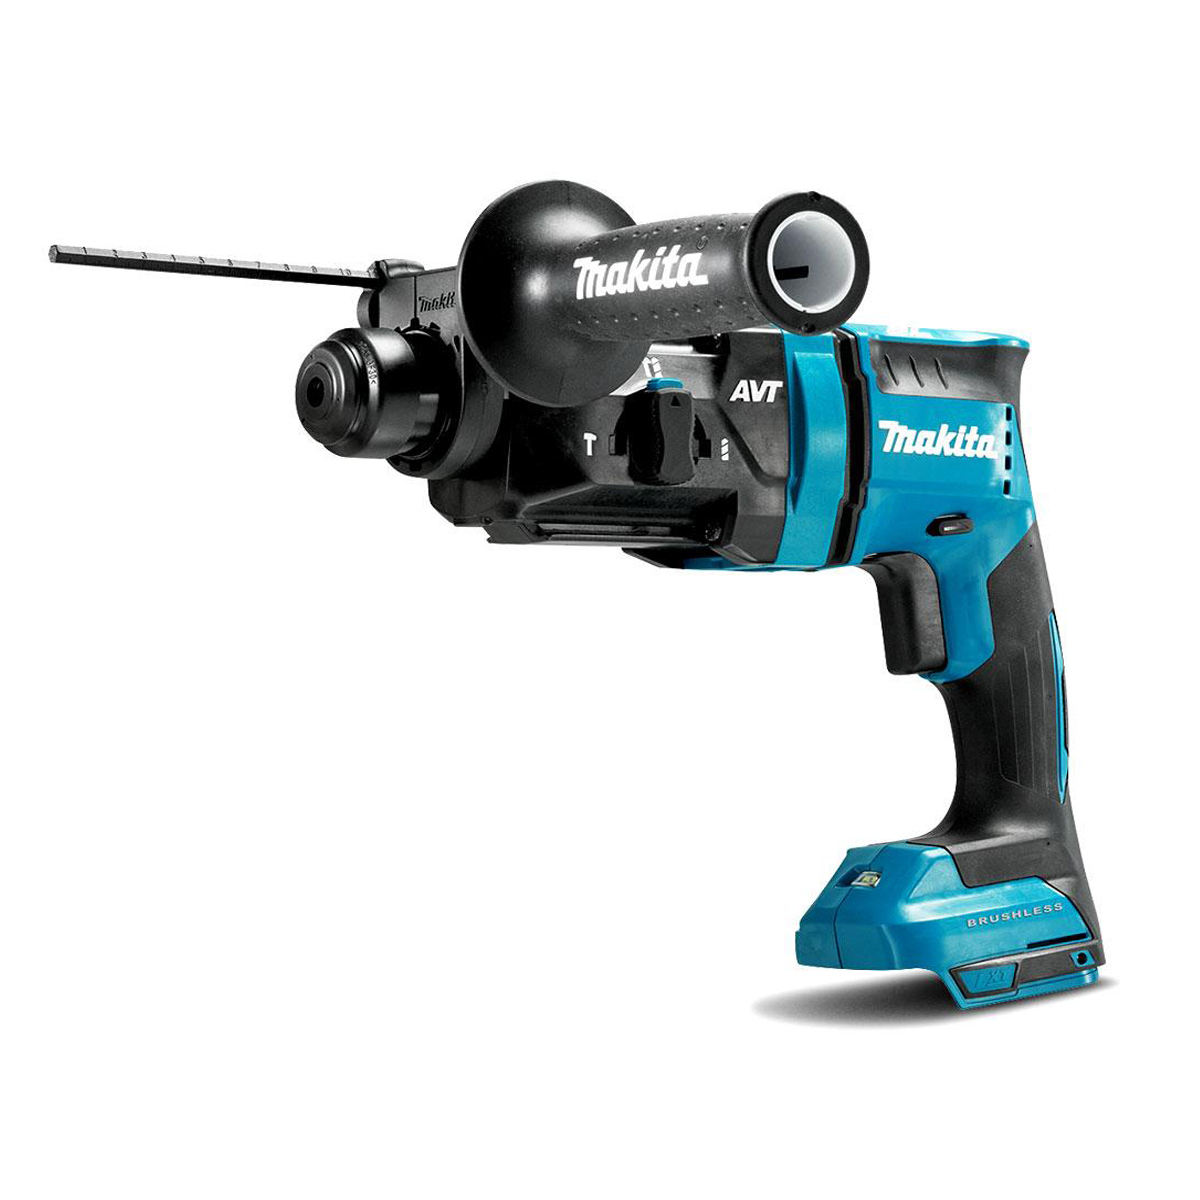 MAKITA 18V BRUSHLESS 3-MODE SDS+ HAMMER DRILL - DHR182 - BODY ONLY